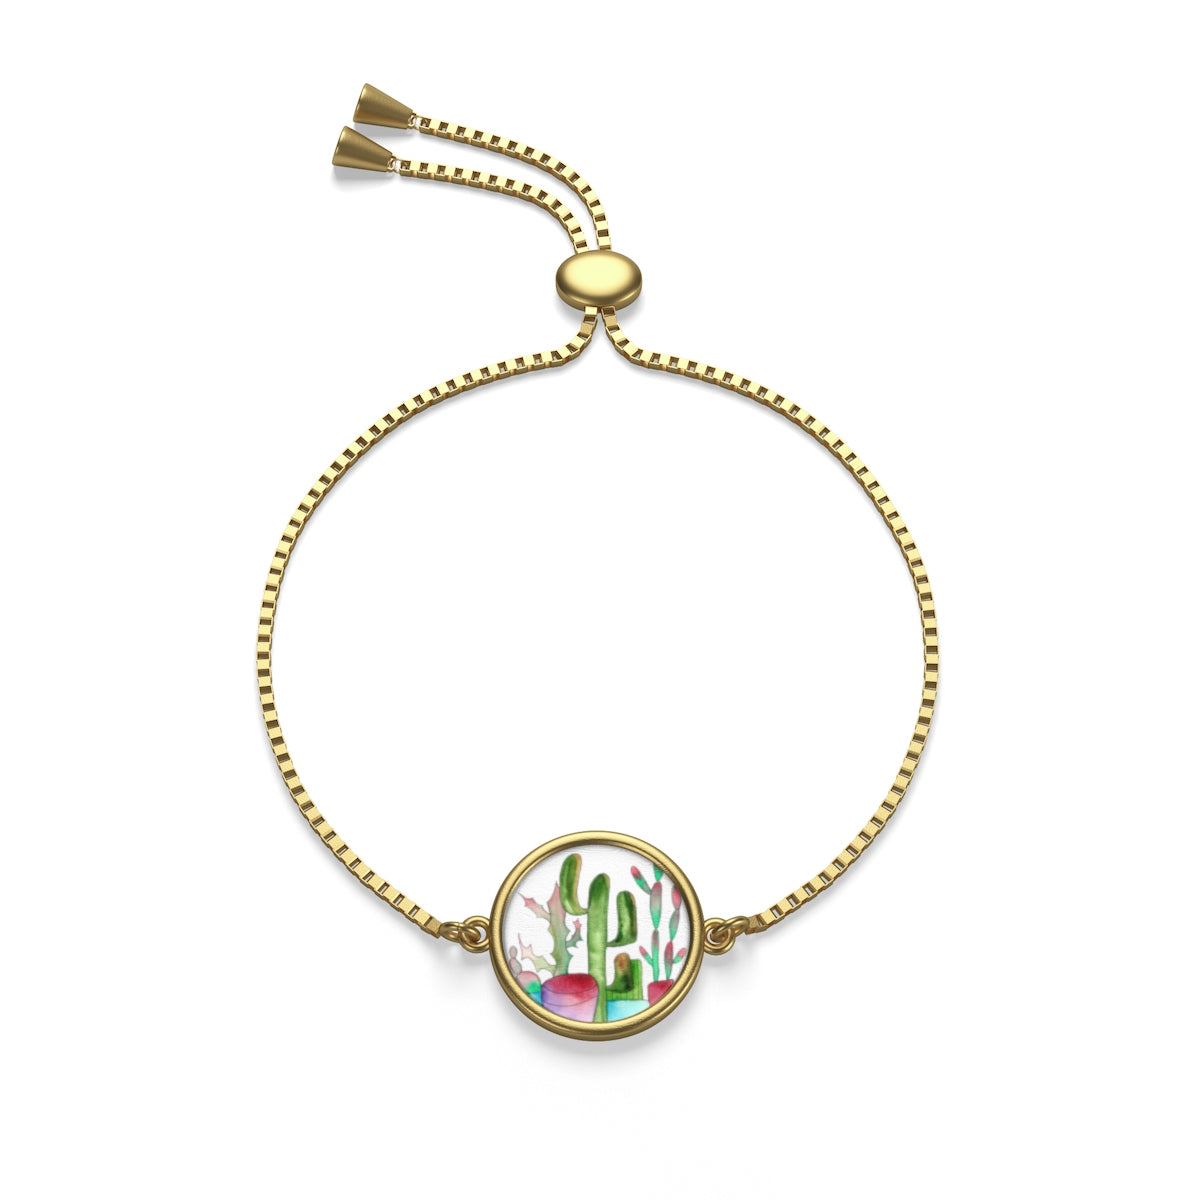 Cactus Family F Box Chain Bracelet, Accessories - Gravitational Pull Art